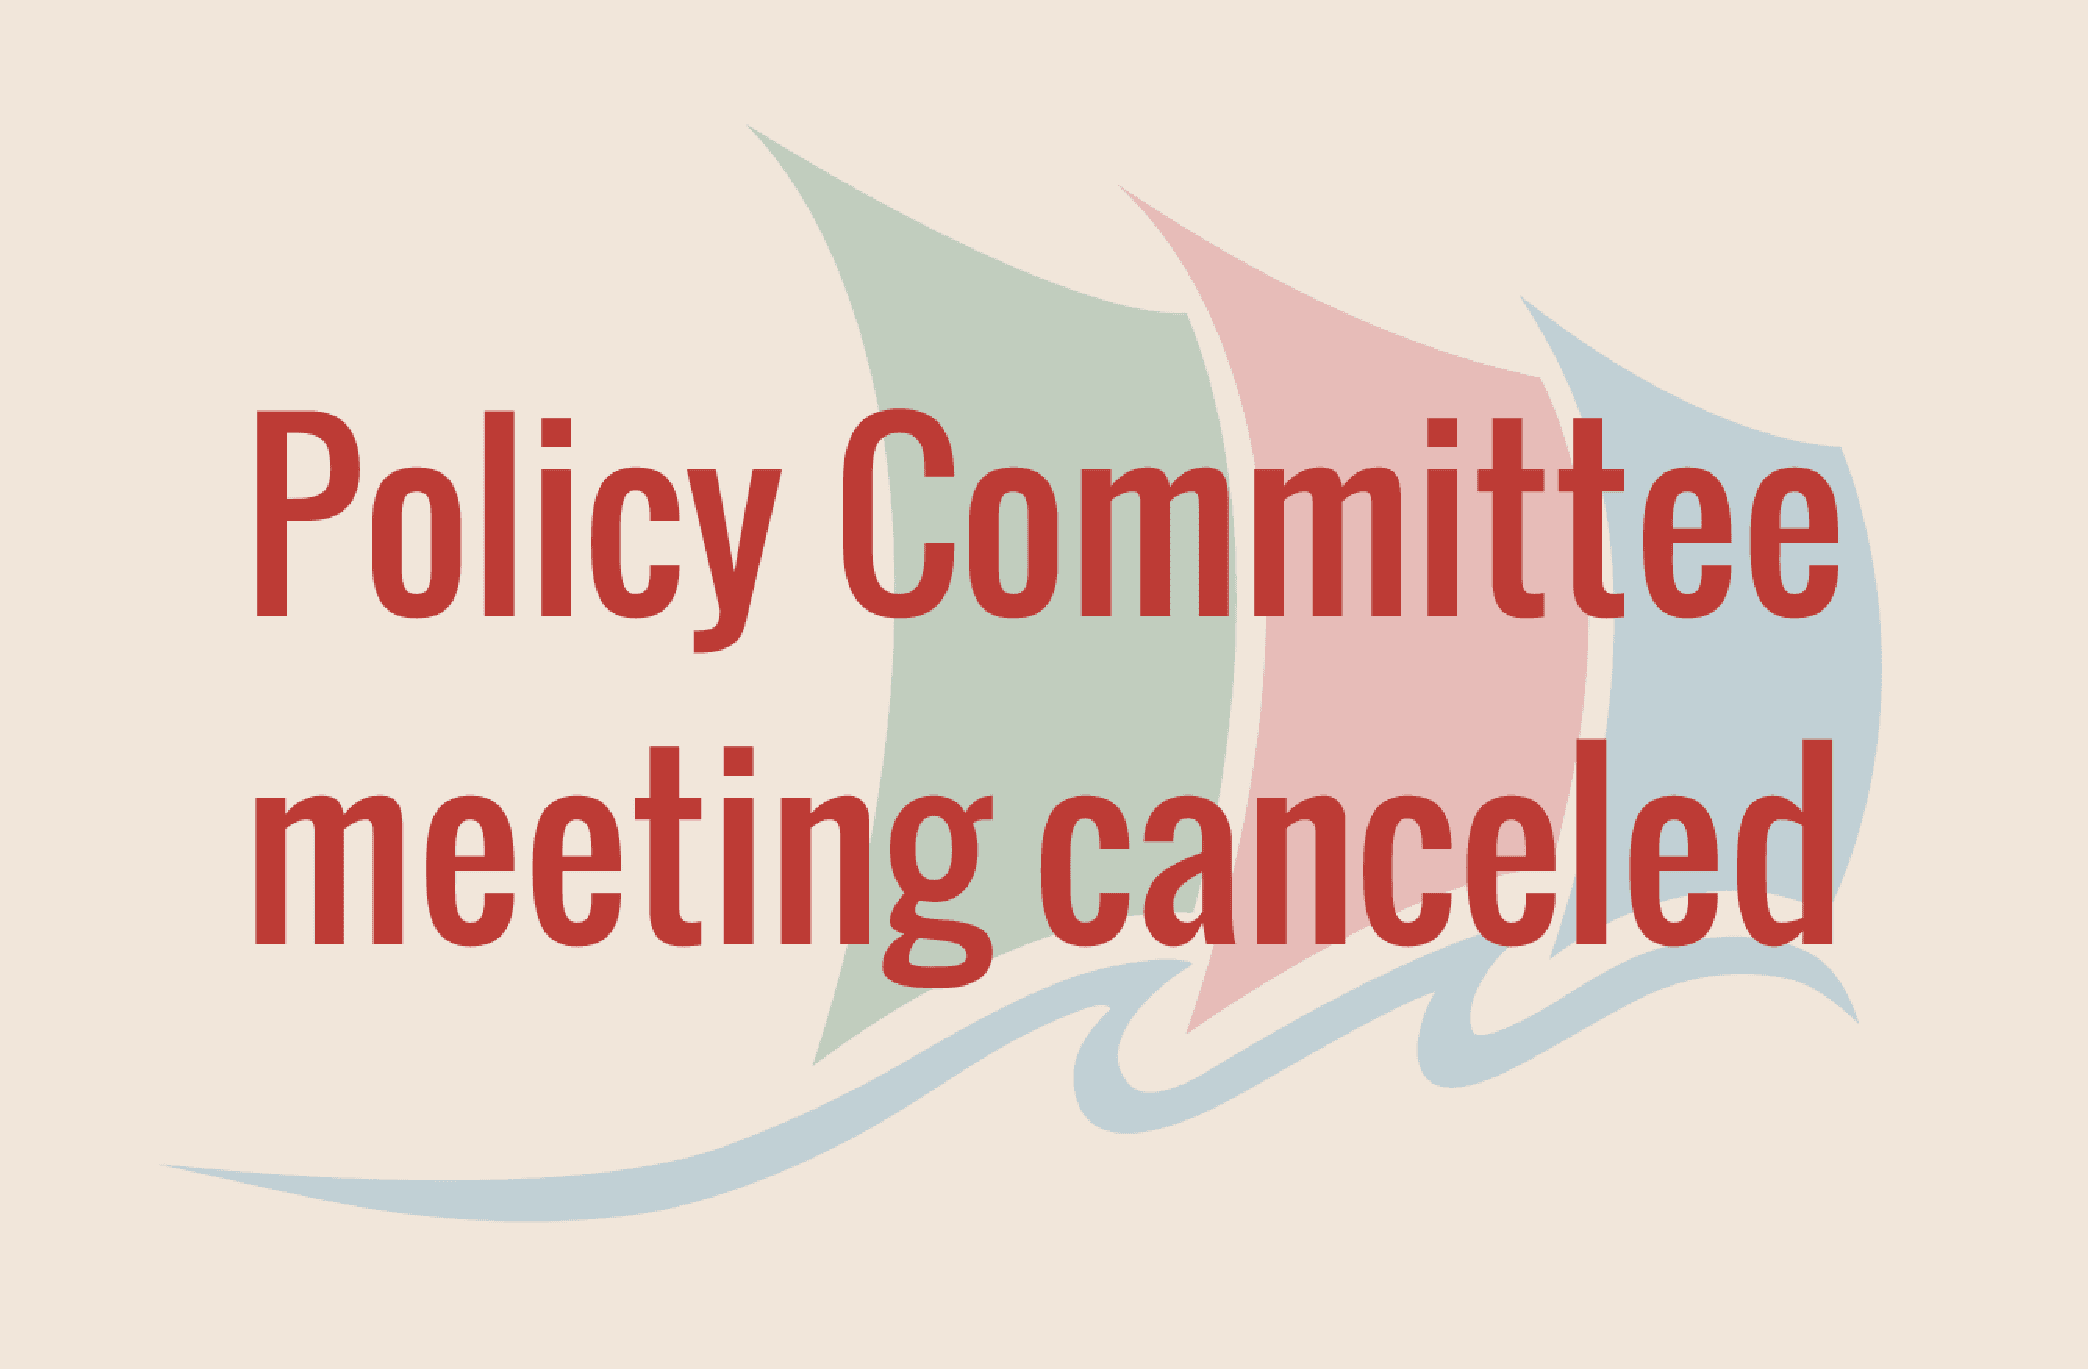 Policy Committee Meeting Canceled